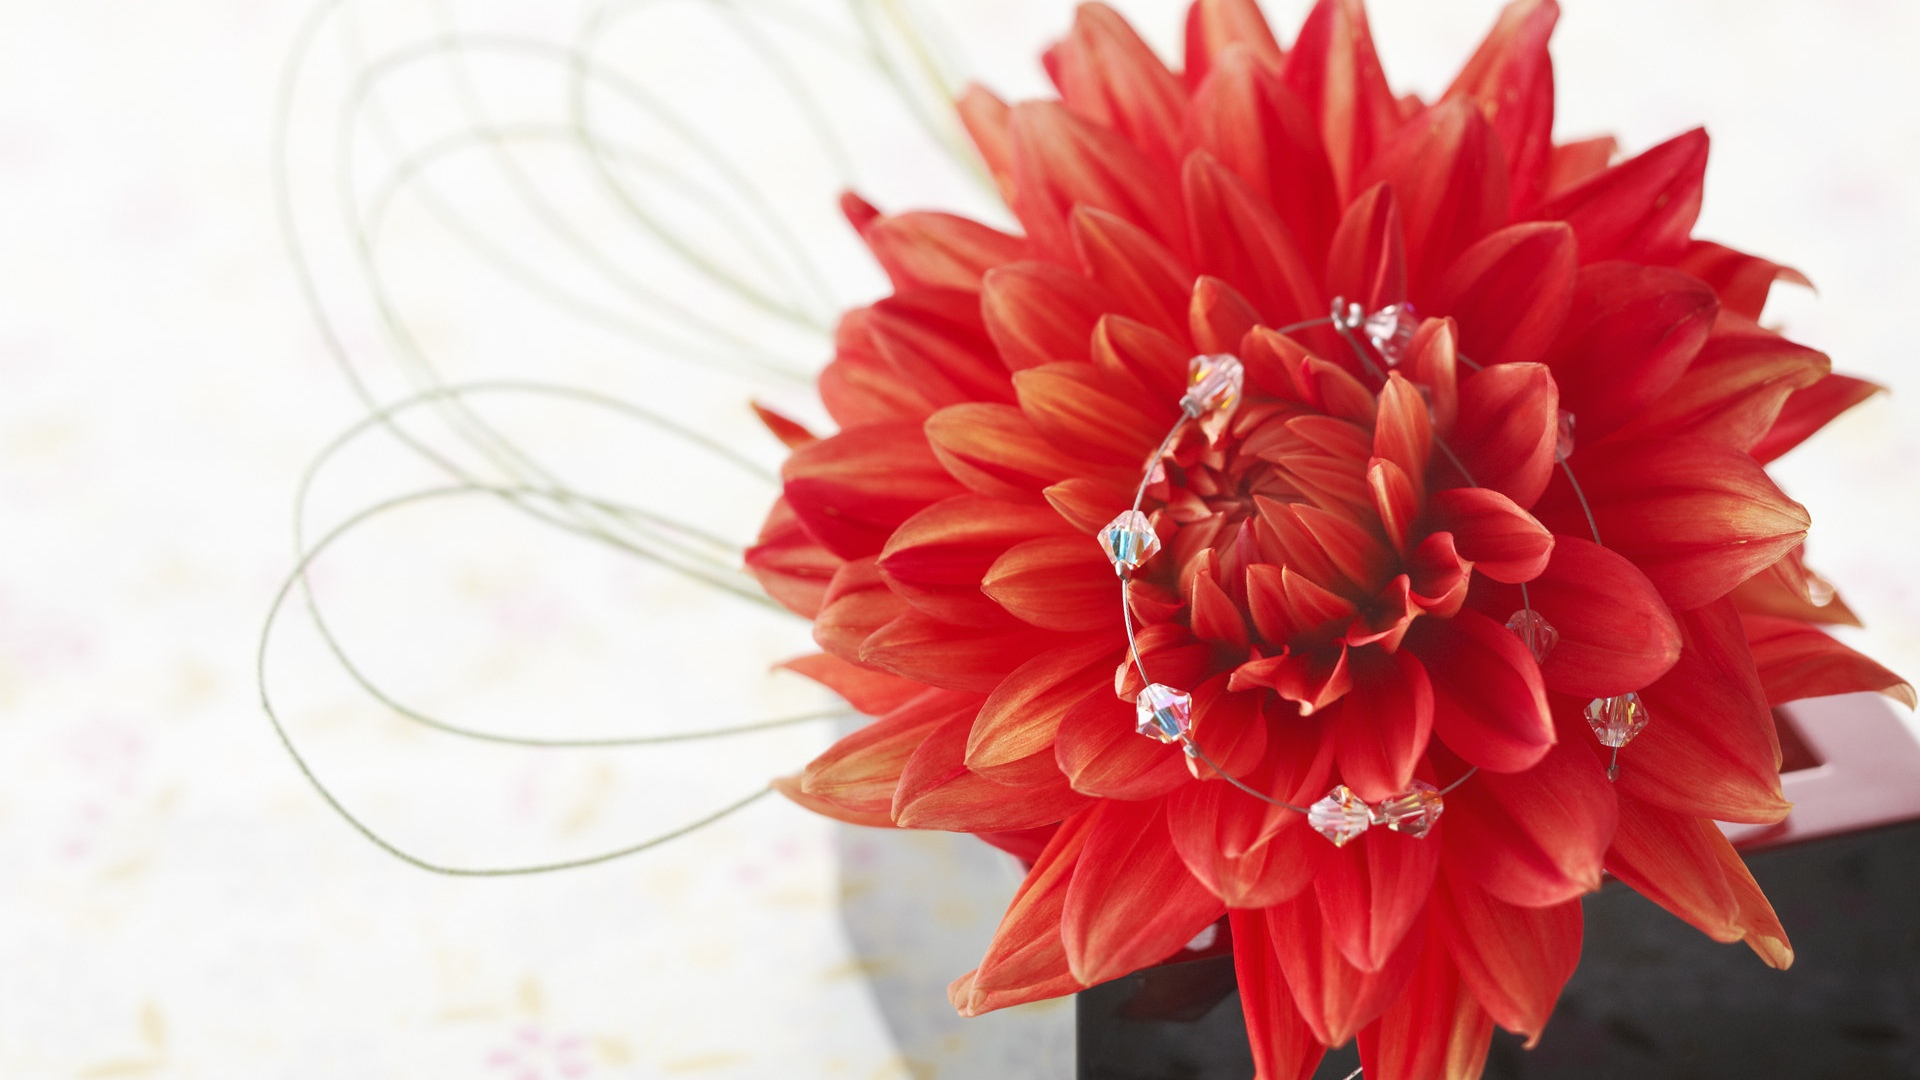 Red dahlia, petals, white background 1920x1080 wallpaper